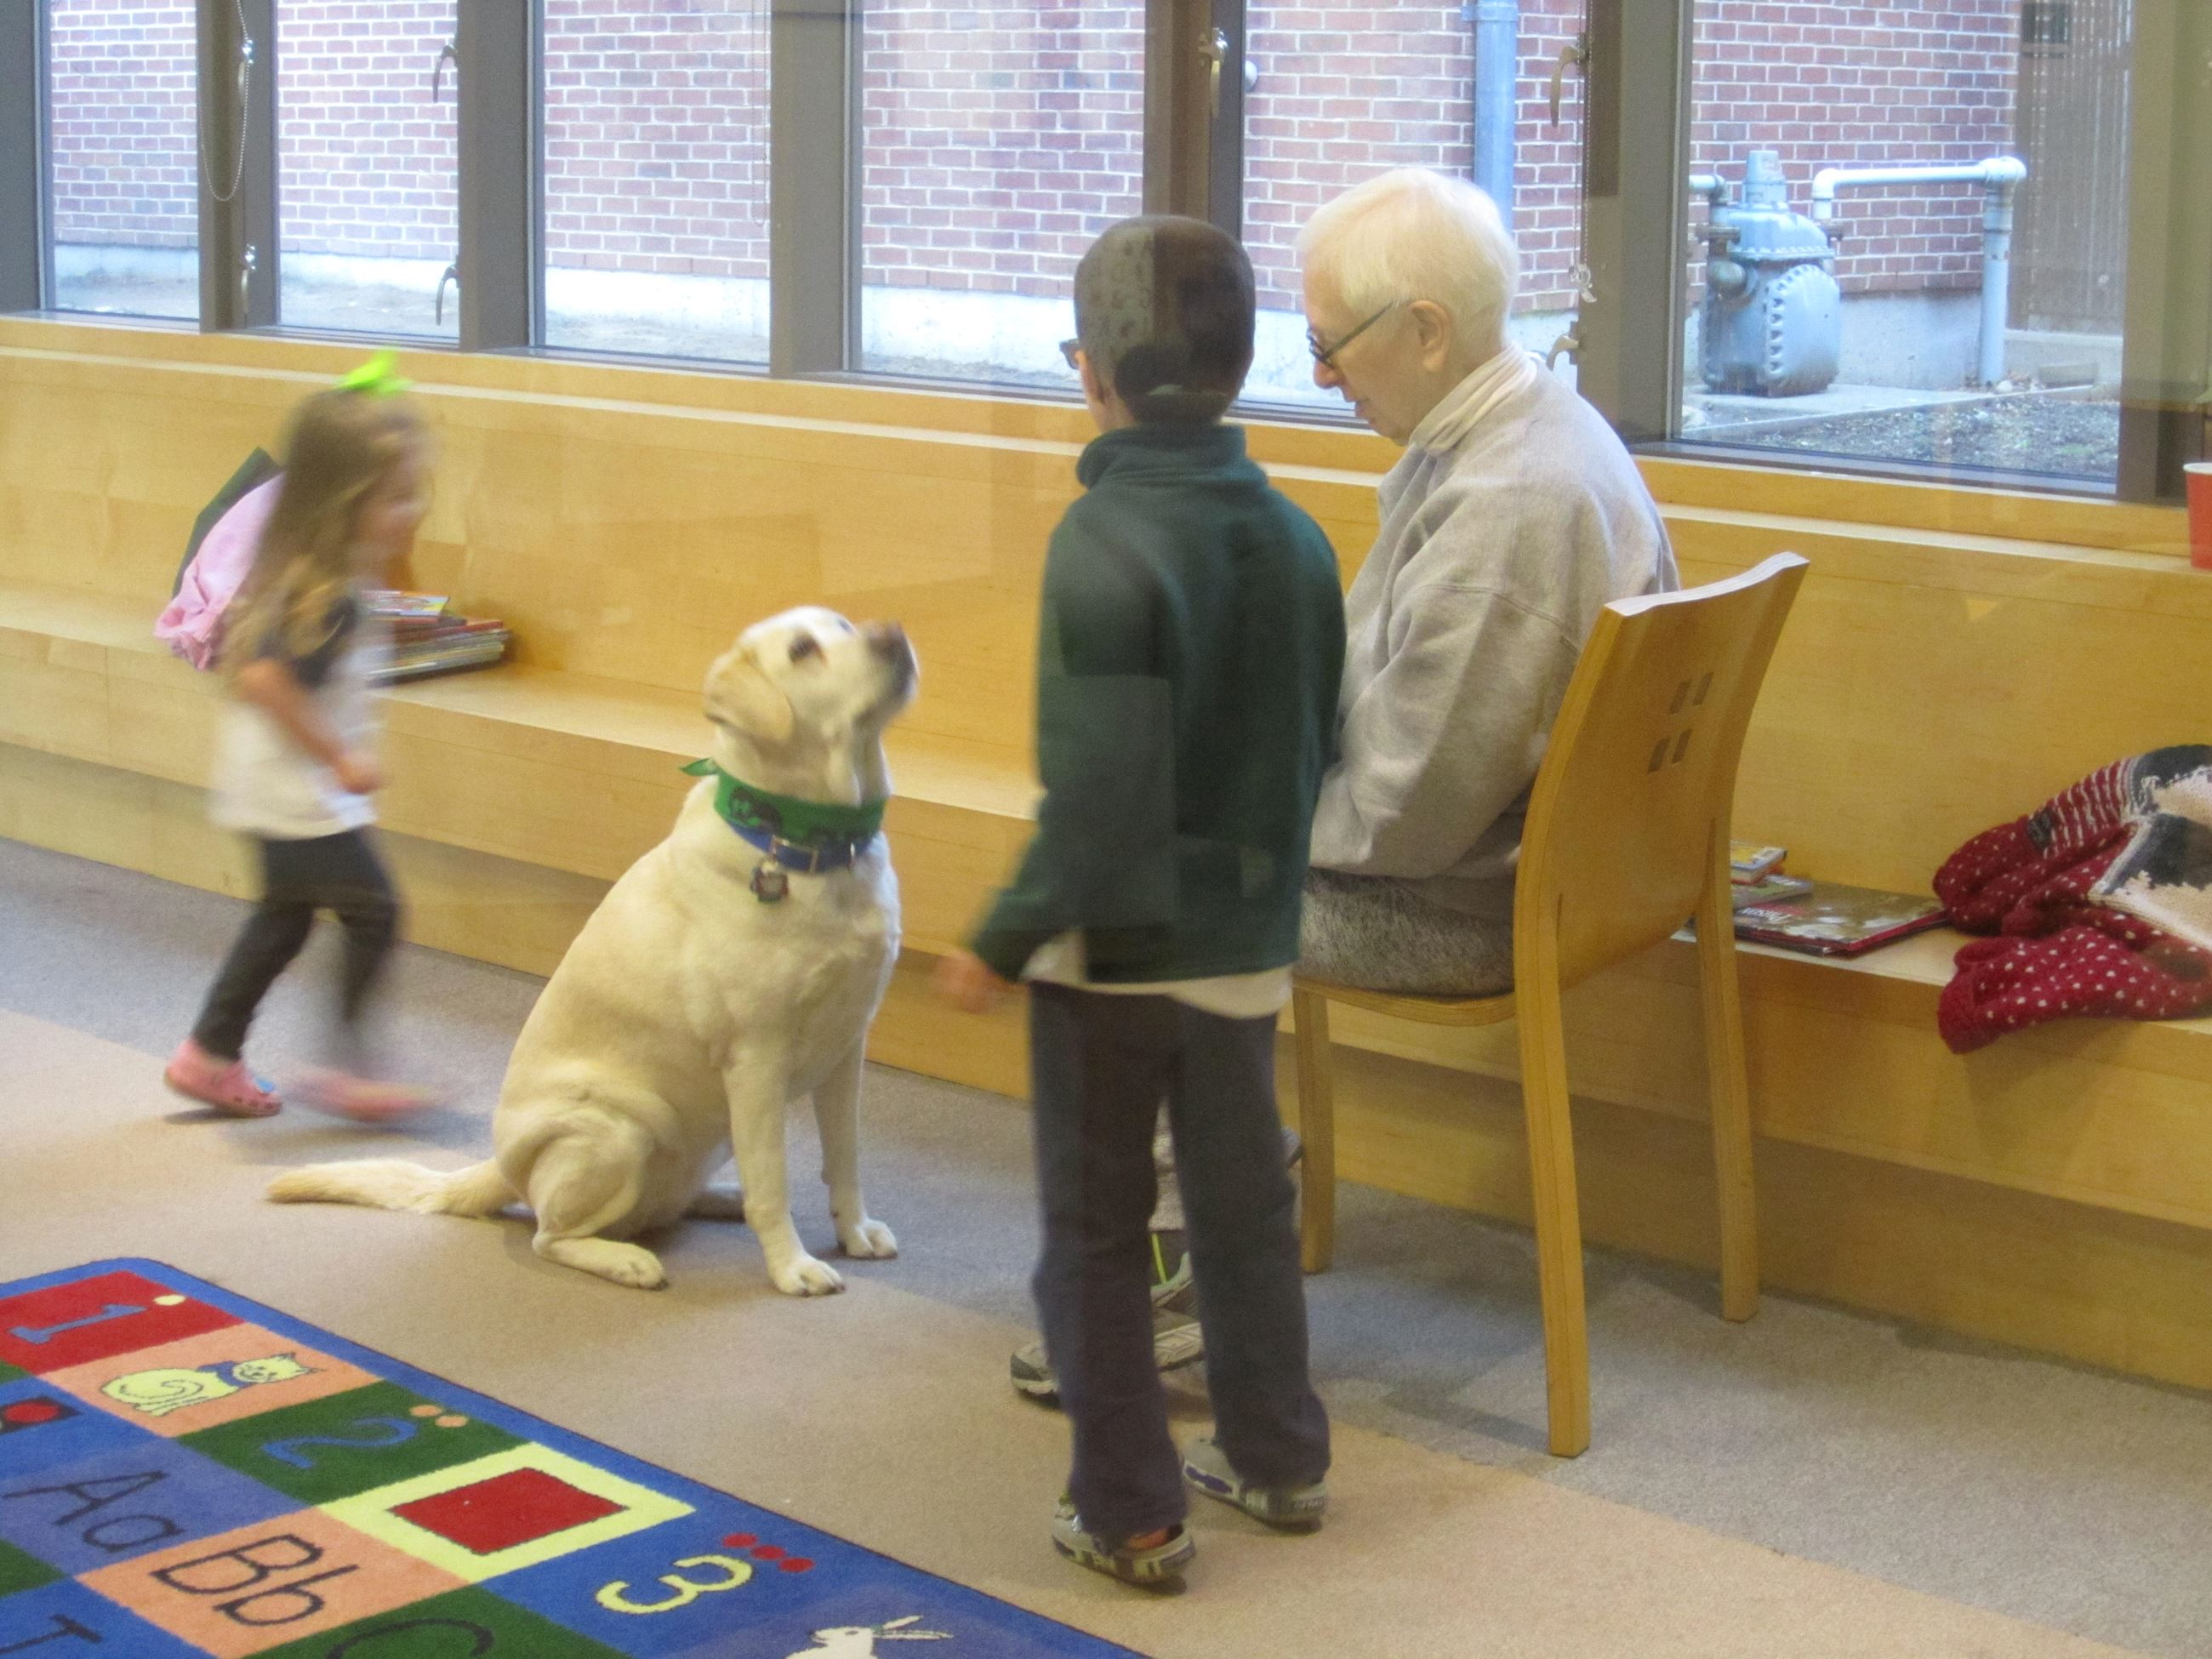 Two children standing next to a golden Labrador sitting on the floor looking up at one of the childr